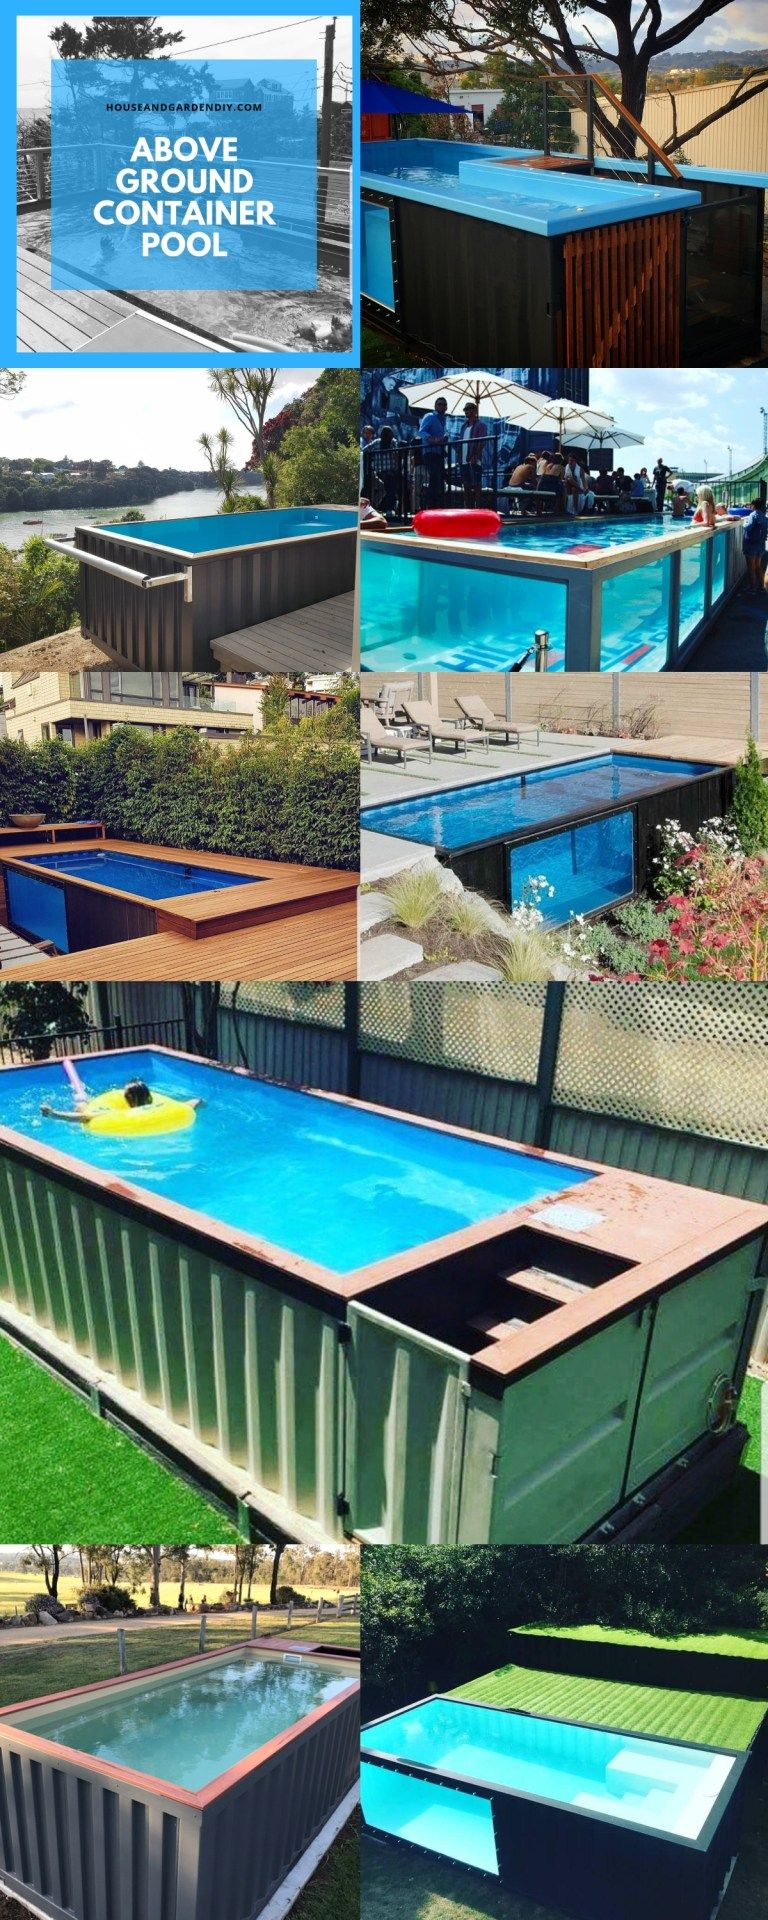 35 Awesome Shipping Container Pool Design Ideas With Images